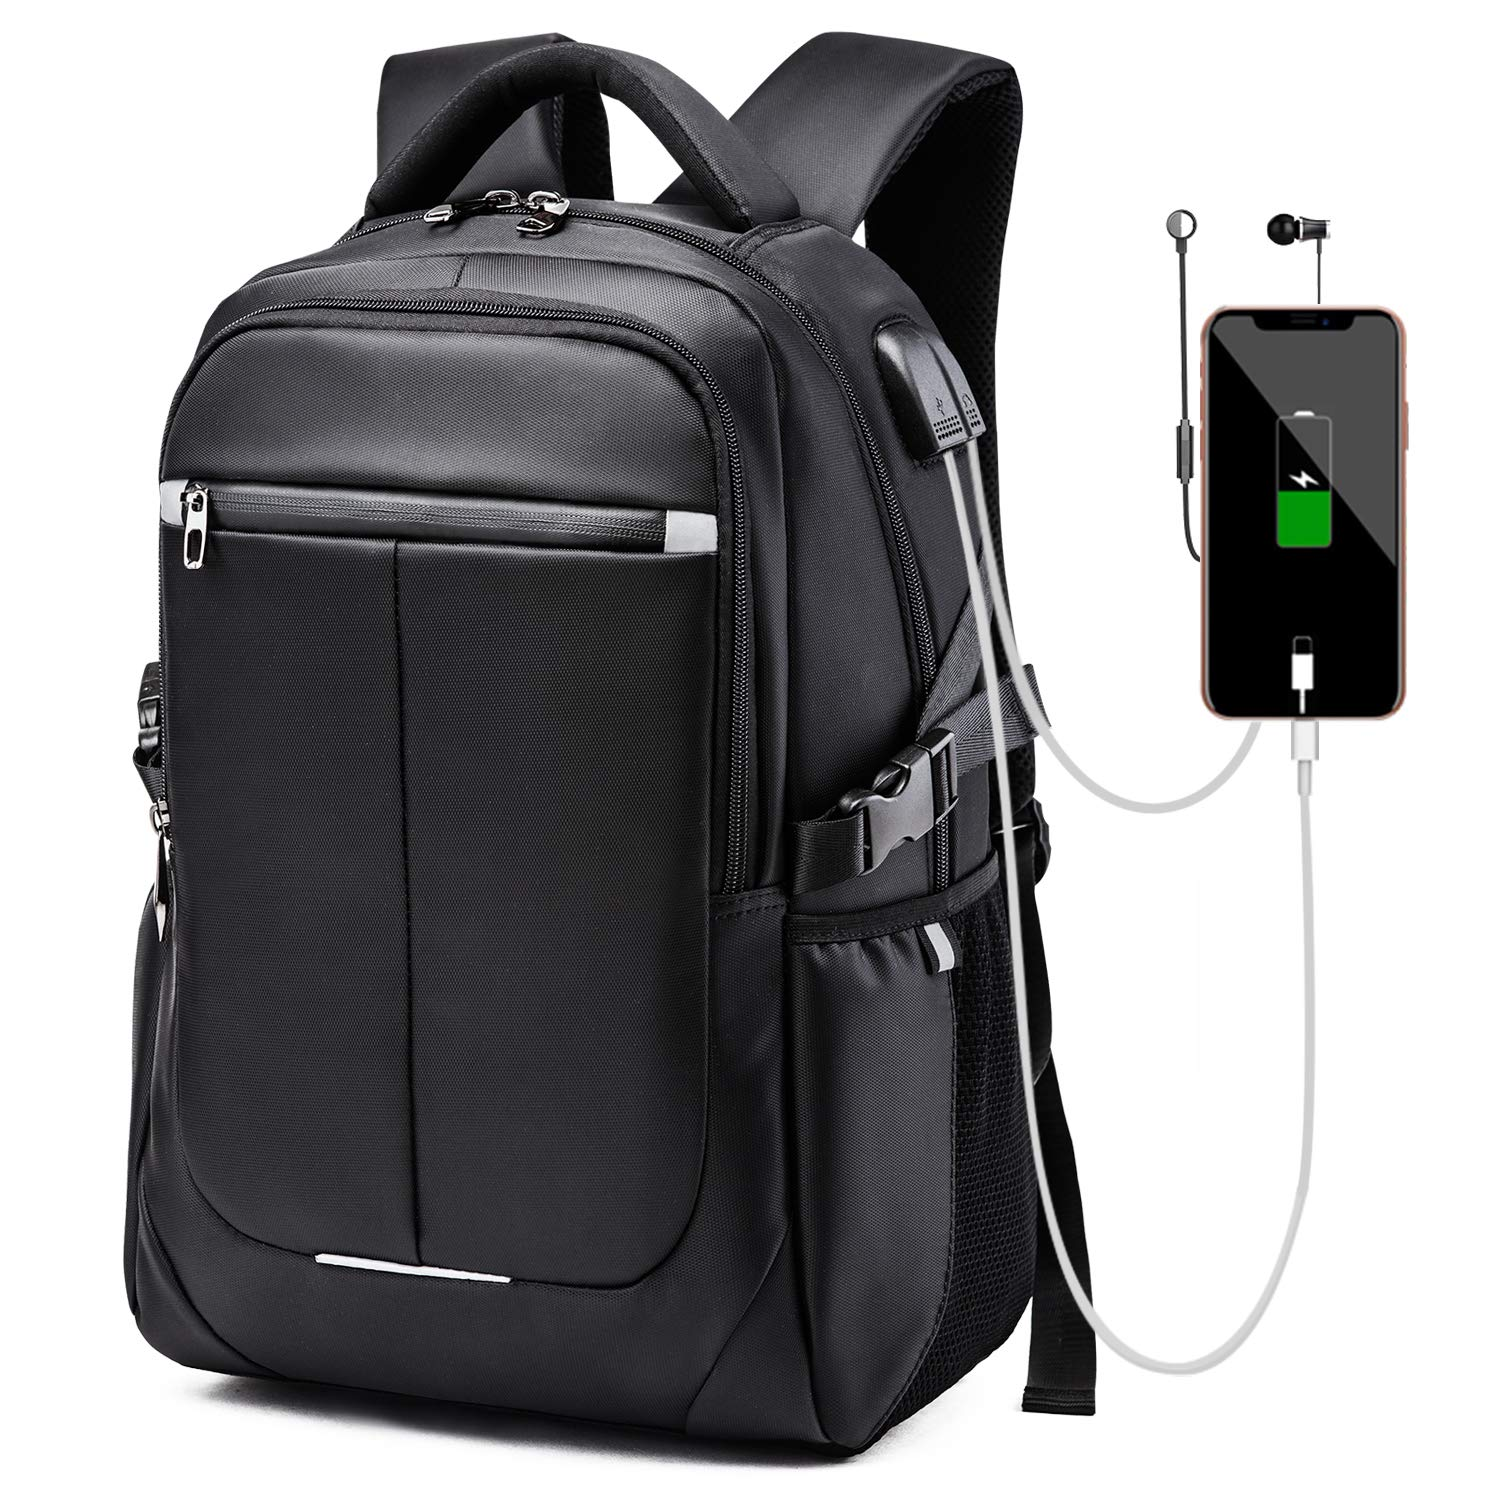 8b17f3c6ae89 misognare Business Laptop Backpack Water Resistant School Rucksack with USB  Charging Port for Women Men, Fits 17 Inch Laptop and Notebook (Black)